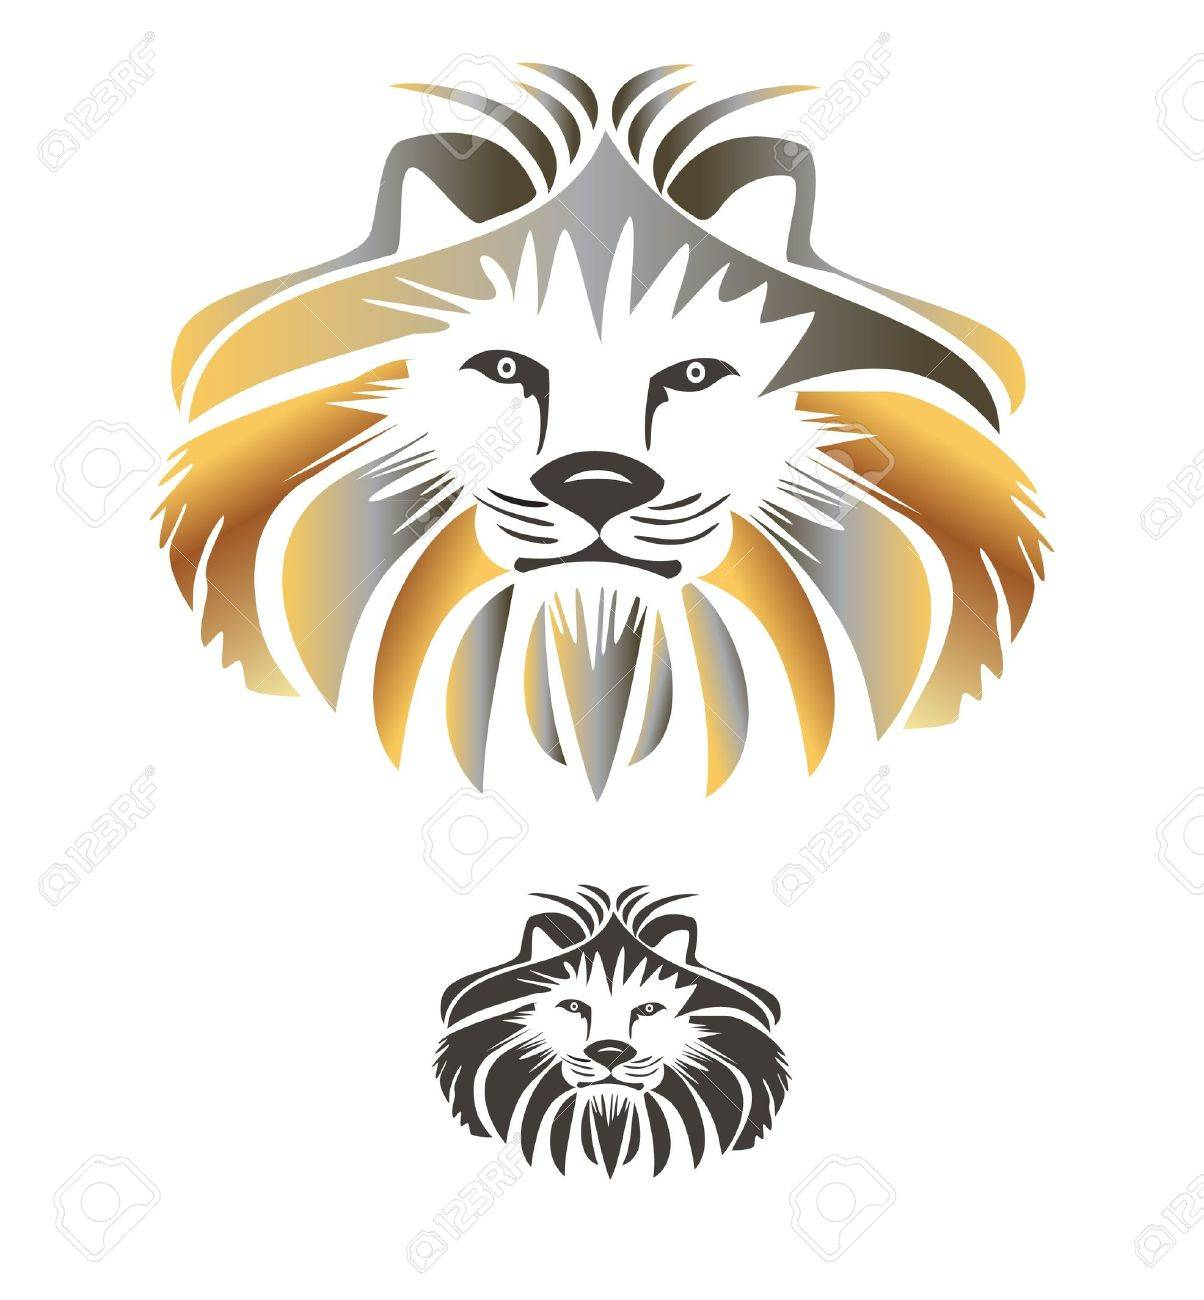 King lion vector logo Stock Vector - 13159564